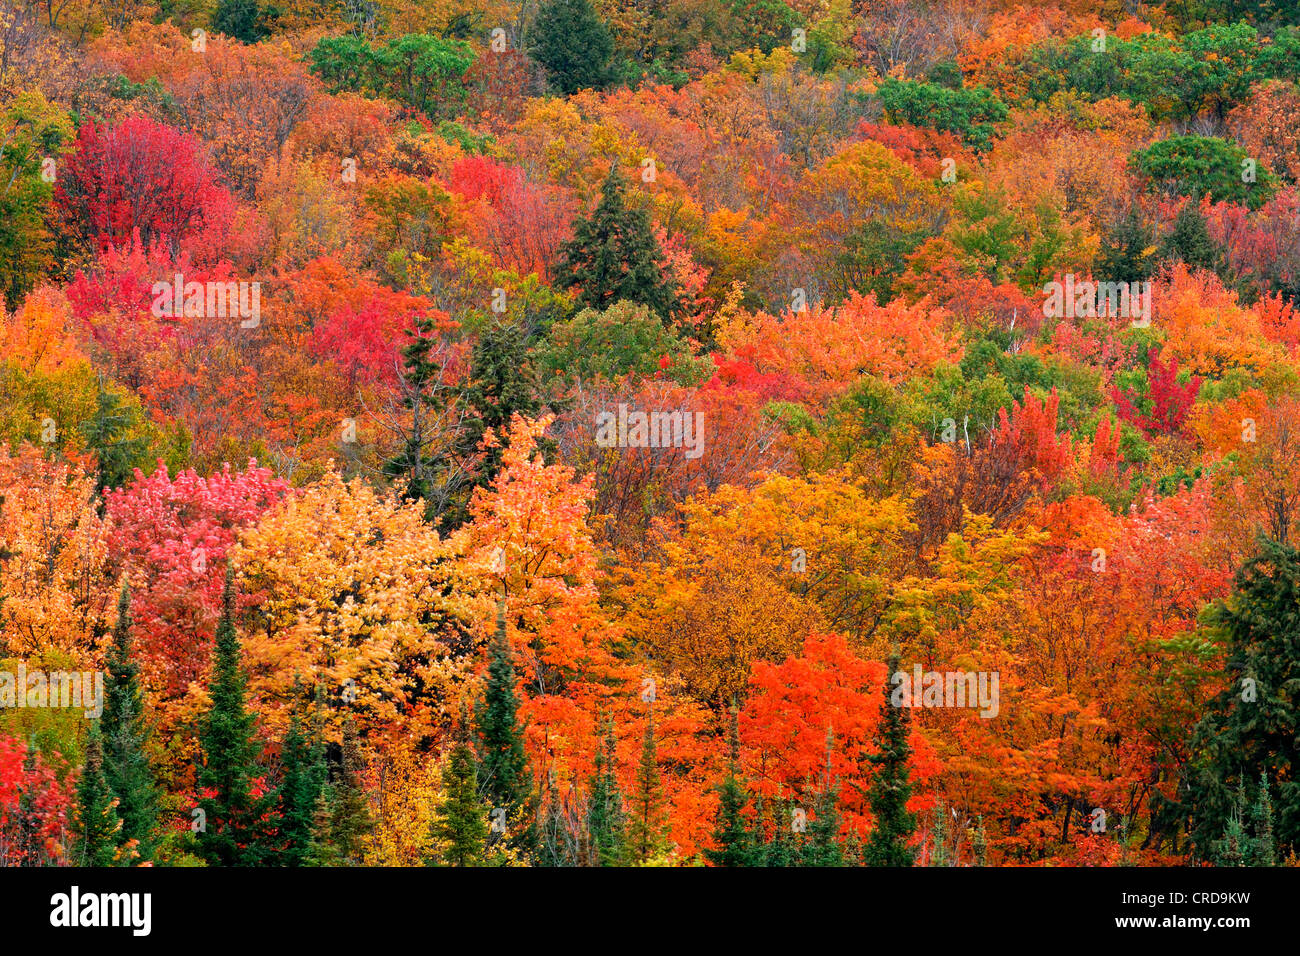 Live Wallpaper Fall Leaves Mixed Forest In Autumn Colours Canada Ontario Algonquin